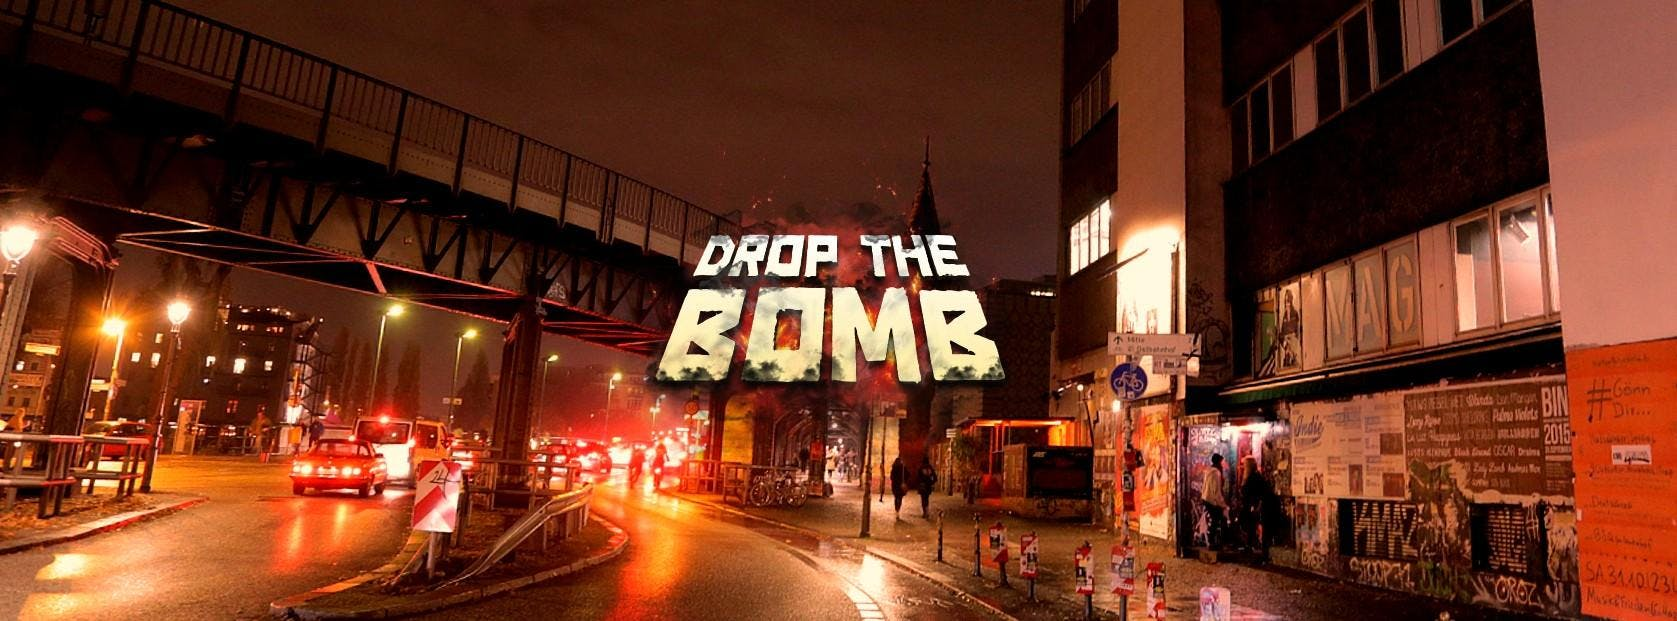 DROP THE BOMB Party, 02.06.18, Musik & Friede